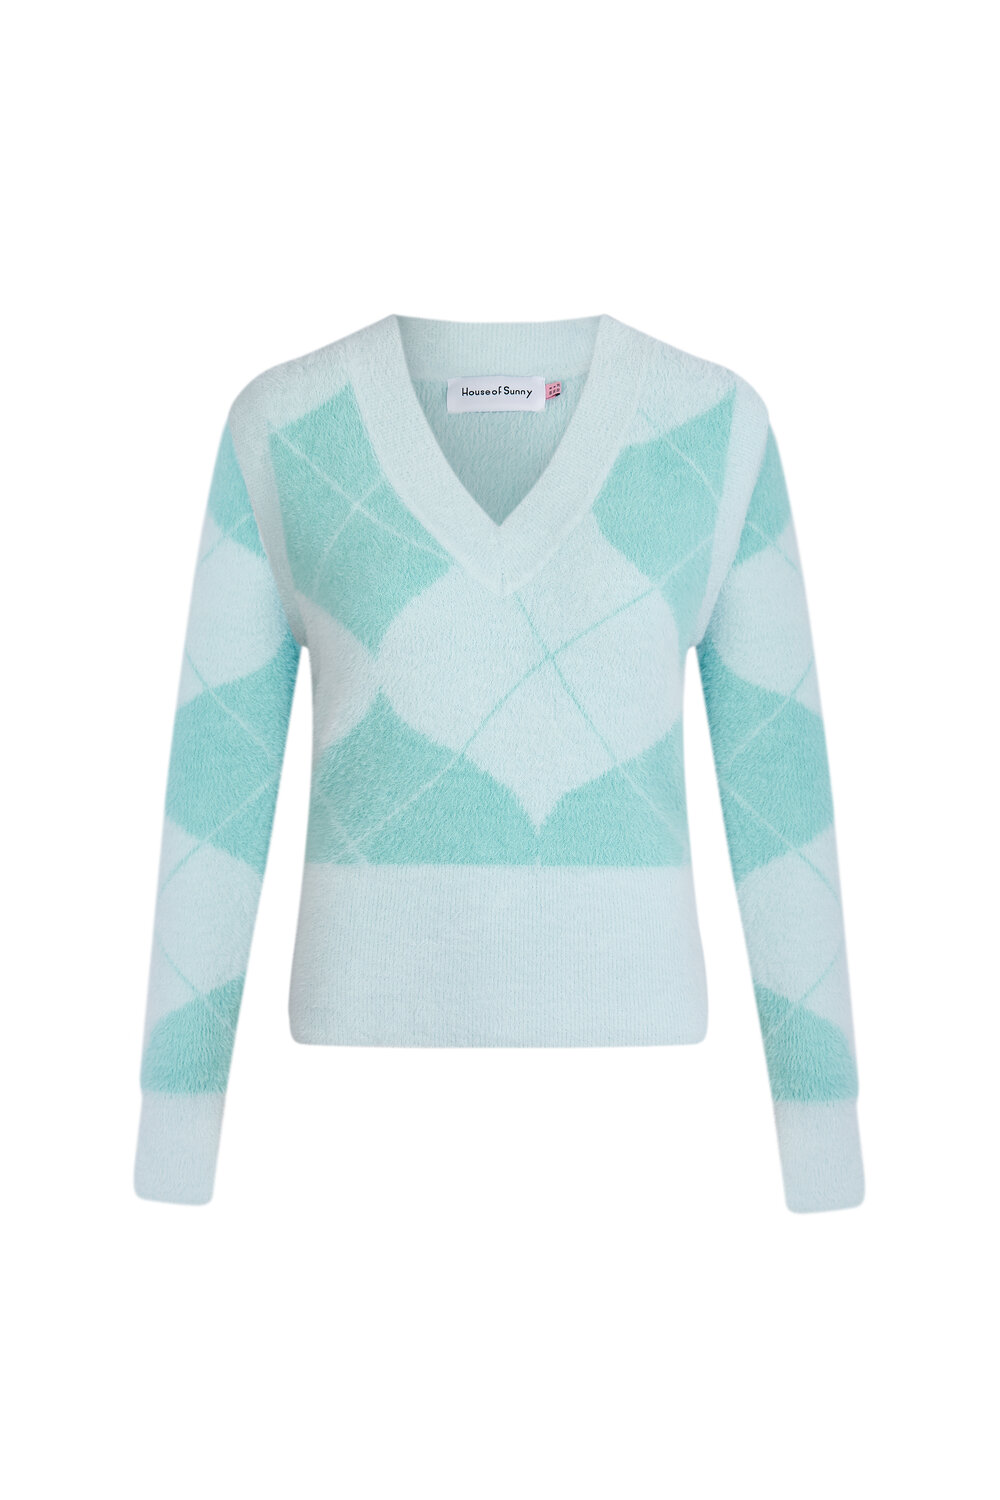 House of Sunny Diamond Knit With Detachable Sleeves